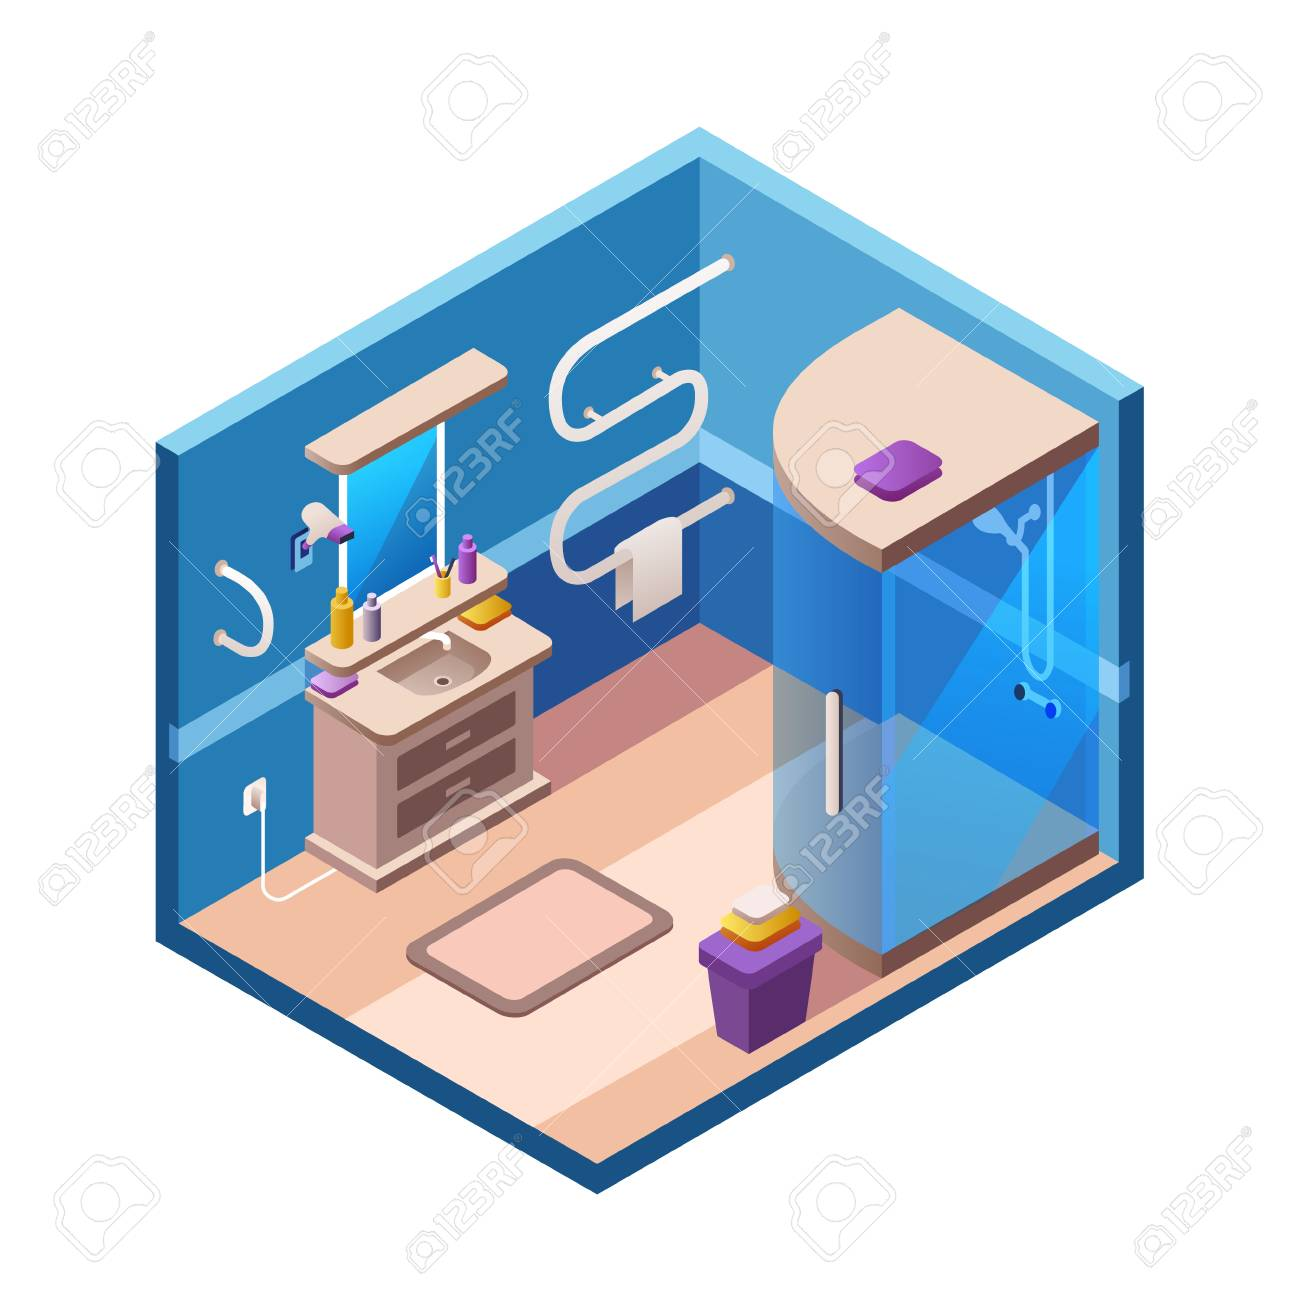 Vector Isometric Bathroom Interior Background Section Template